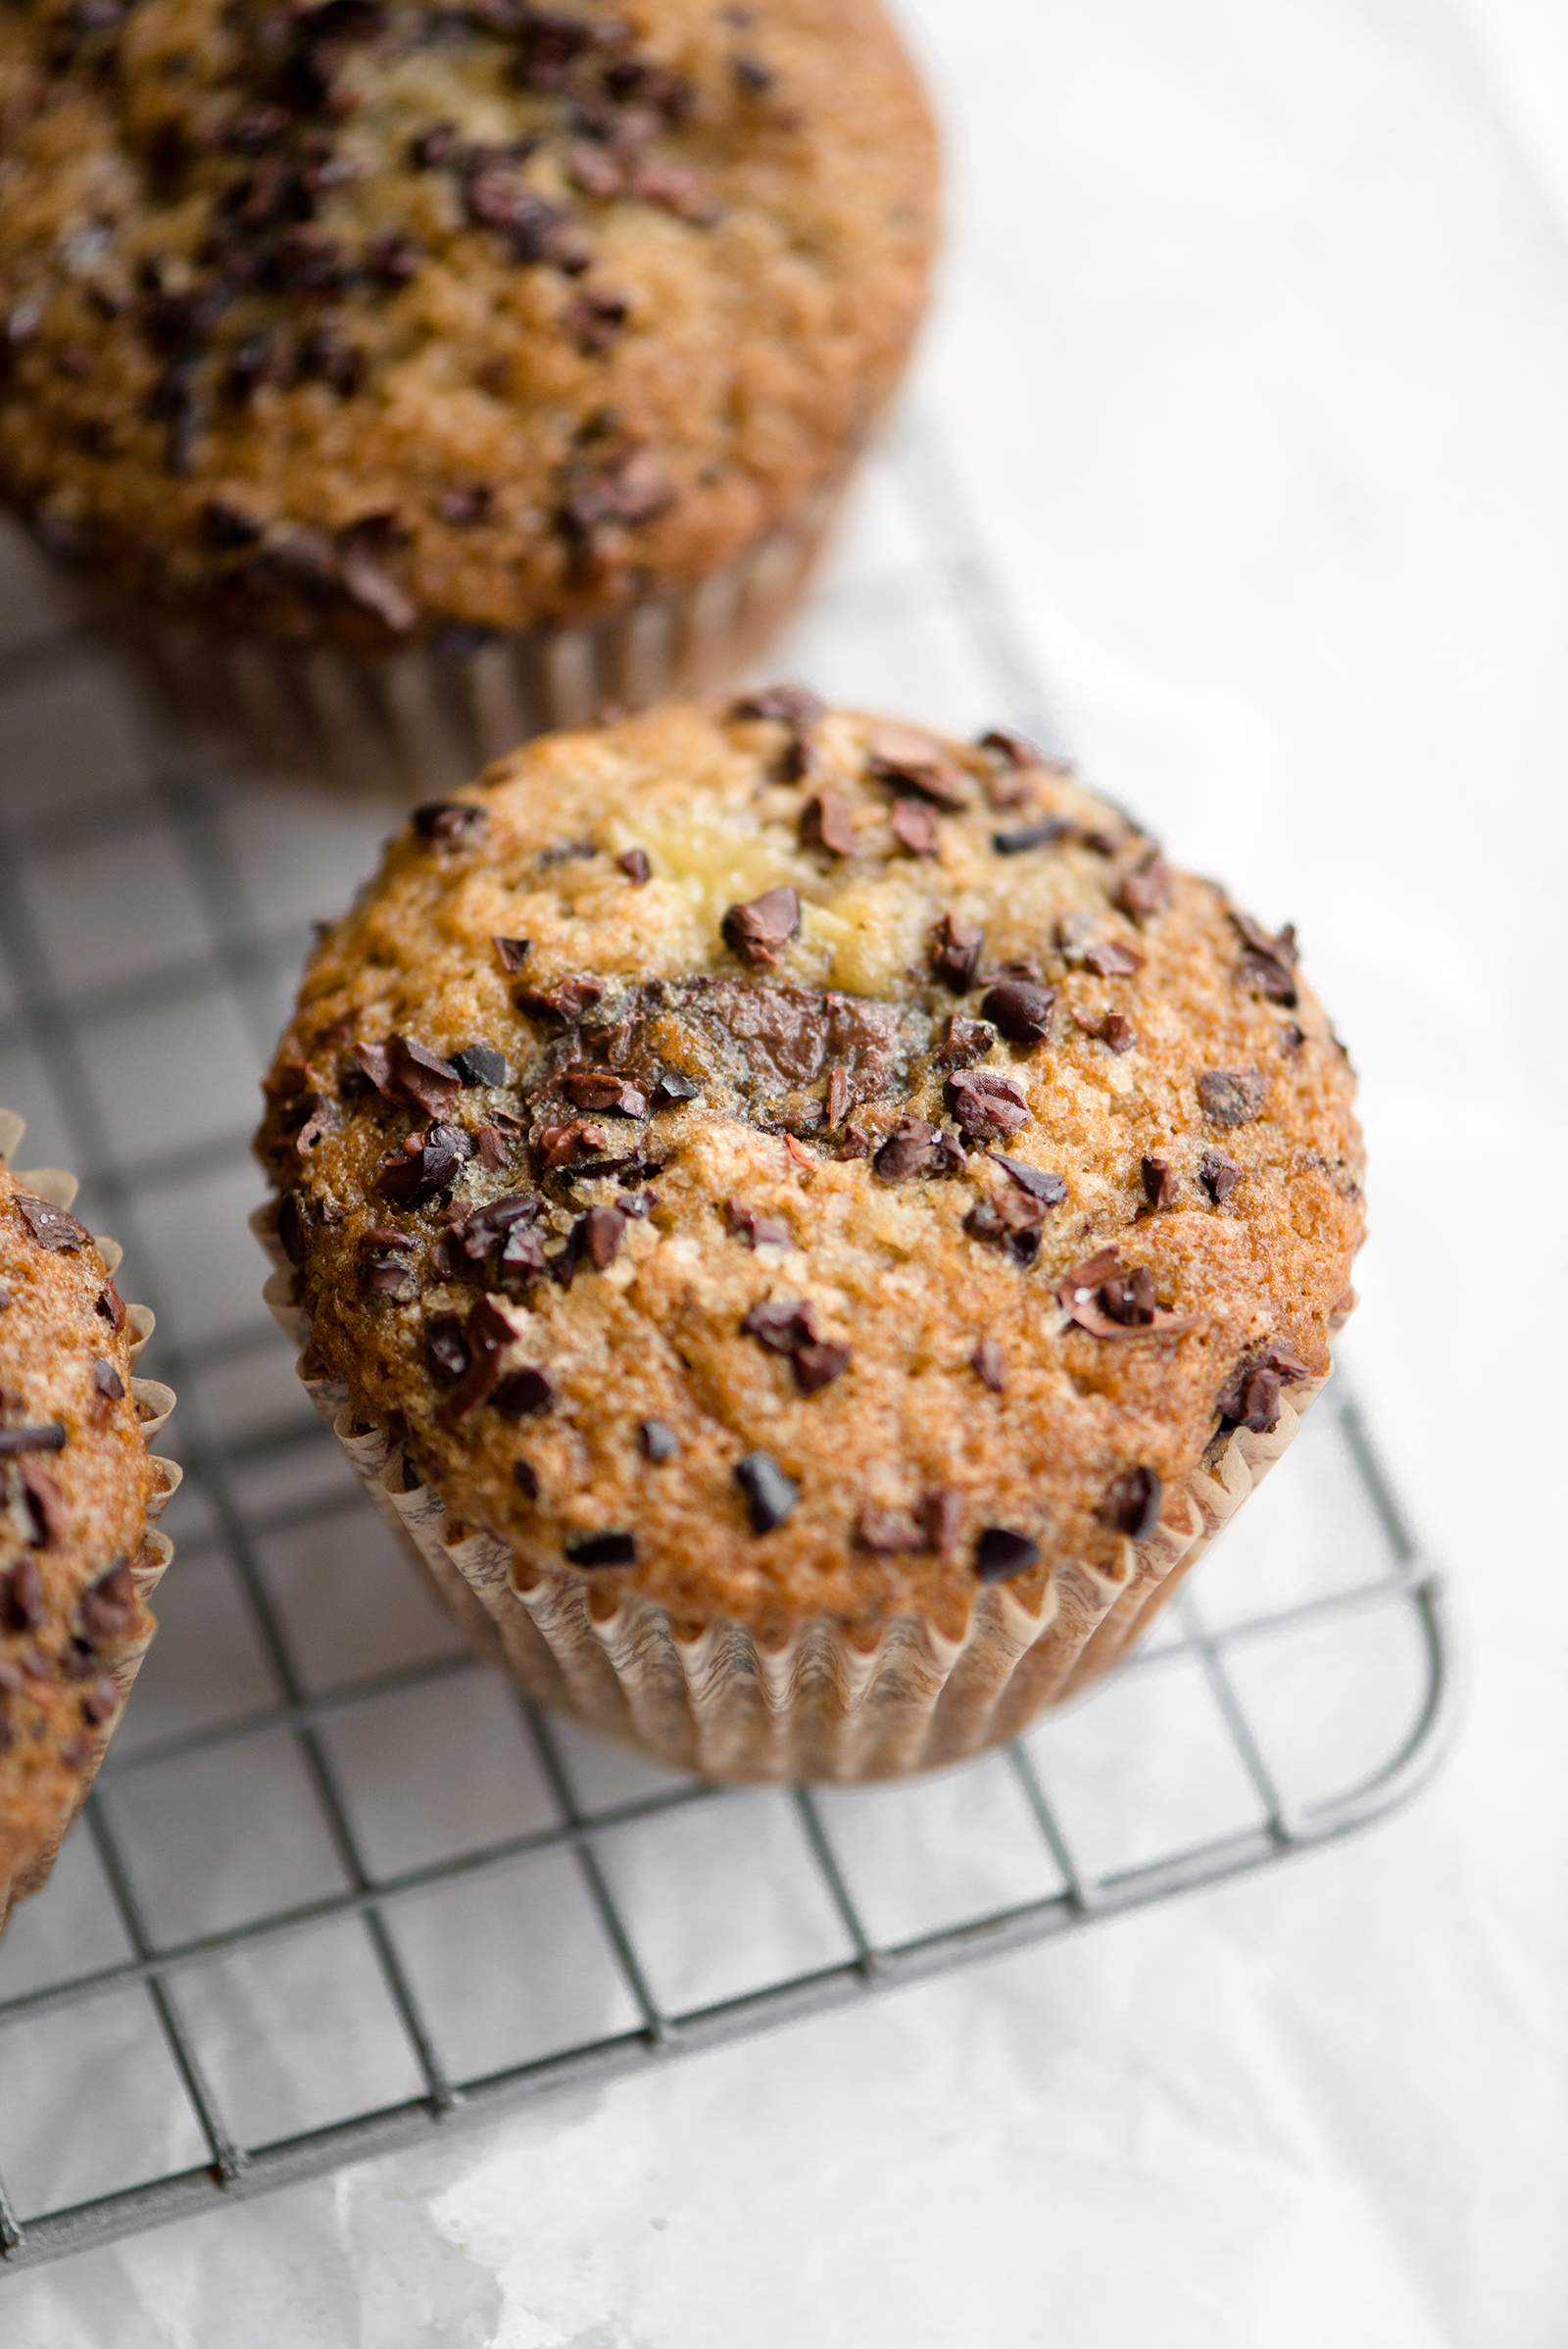 Banana Chocolate Nib Muffins | Now, Forager | Teresa Floyd